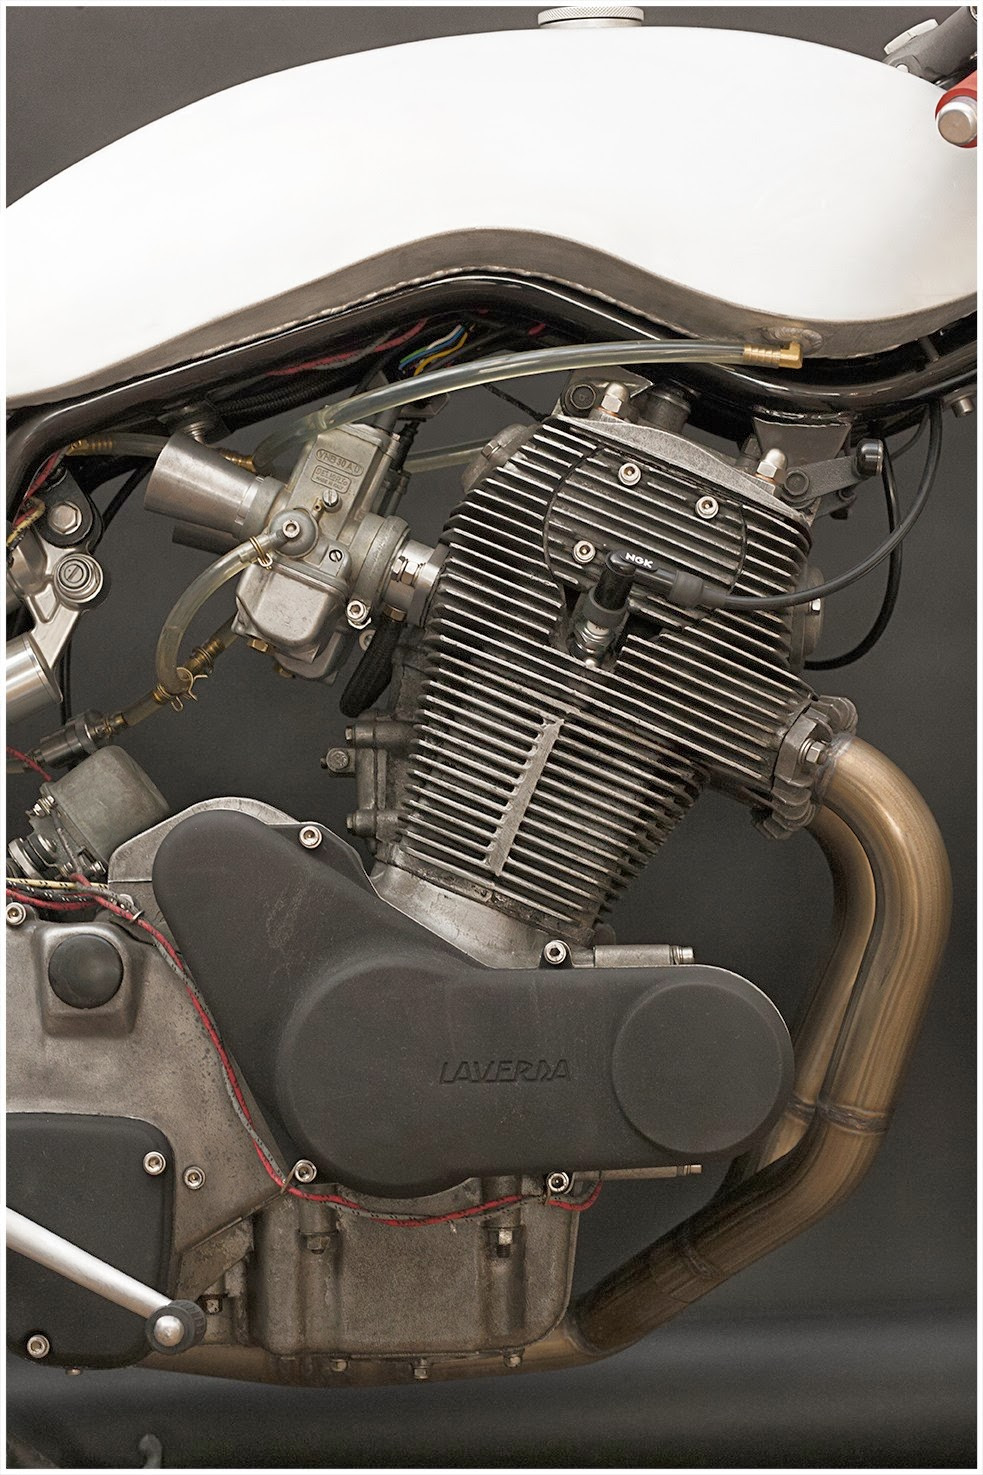 Laverda SF 750 Cafe Racer by Wrenchmonkees is one minimalist looking well built cafe racer  Laverda SF 750 Standard engine, Standard Dell'Orto PHF carburetor, aluminum velocity stacks. Laverda SF 750 New electronic ignition system